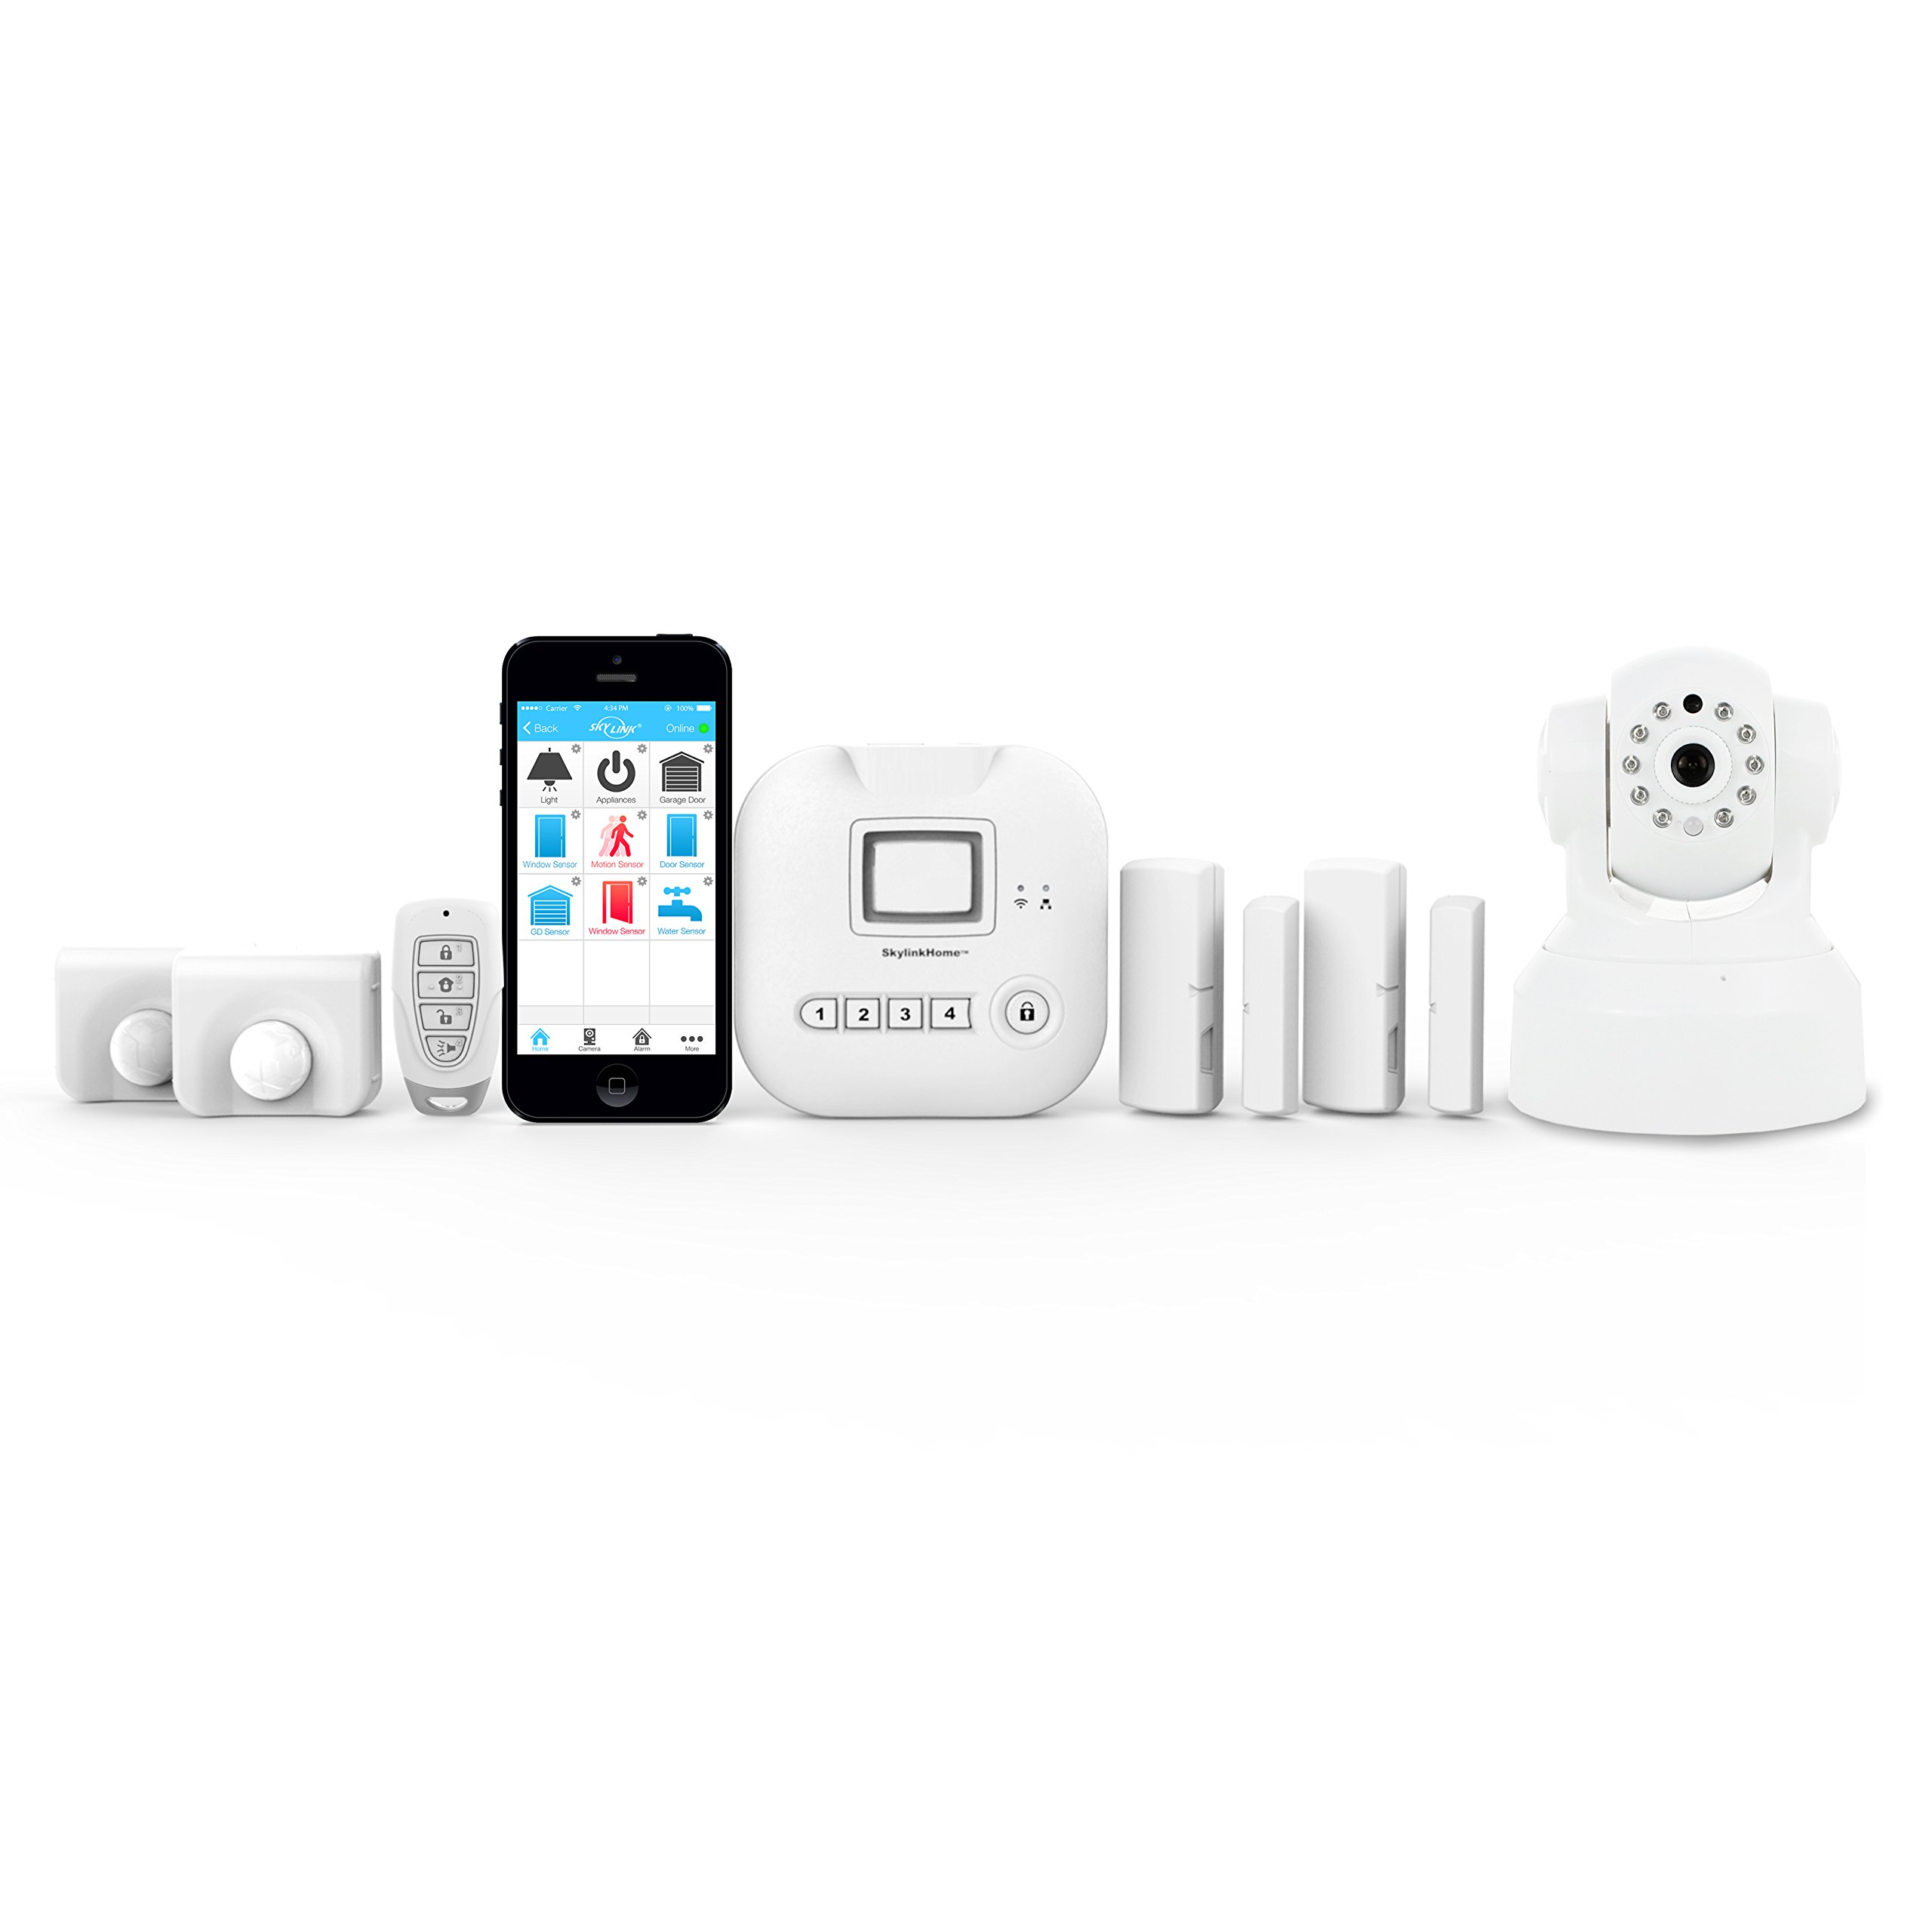 Skylink SK-250 Alarm Camera Deluxe Connected Wireless Security Home Automation System, Ios Iphone Android Smartphone, Echo Alexa and Ifttt Compatible with No Monthly Fees, White by SKYLINK